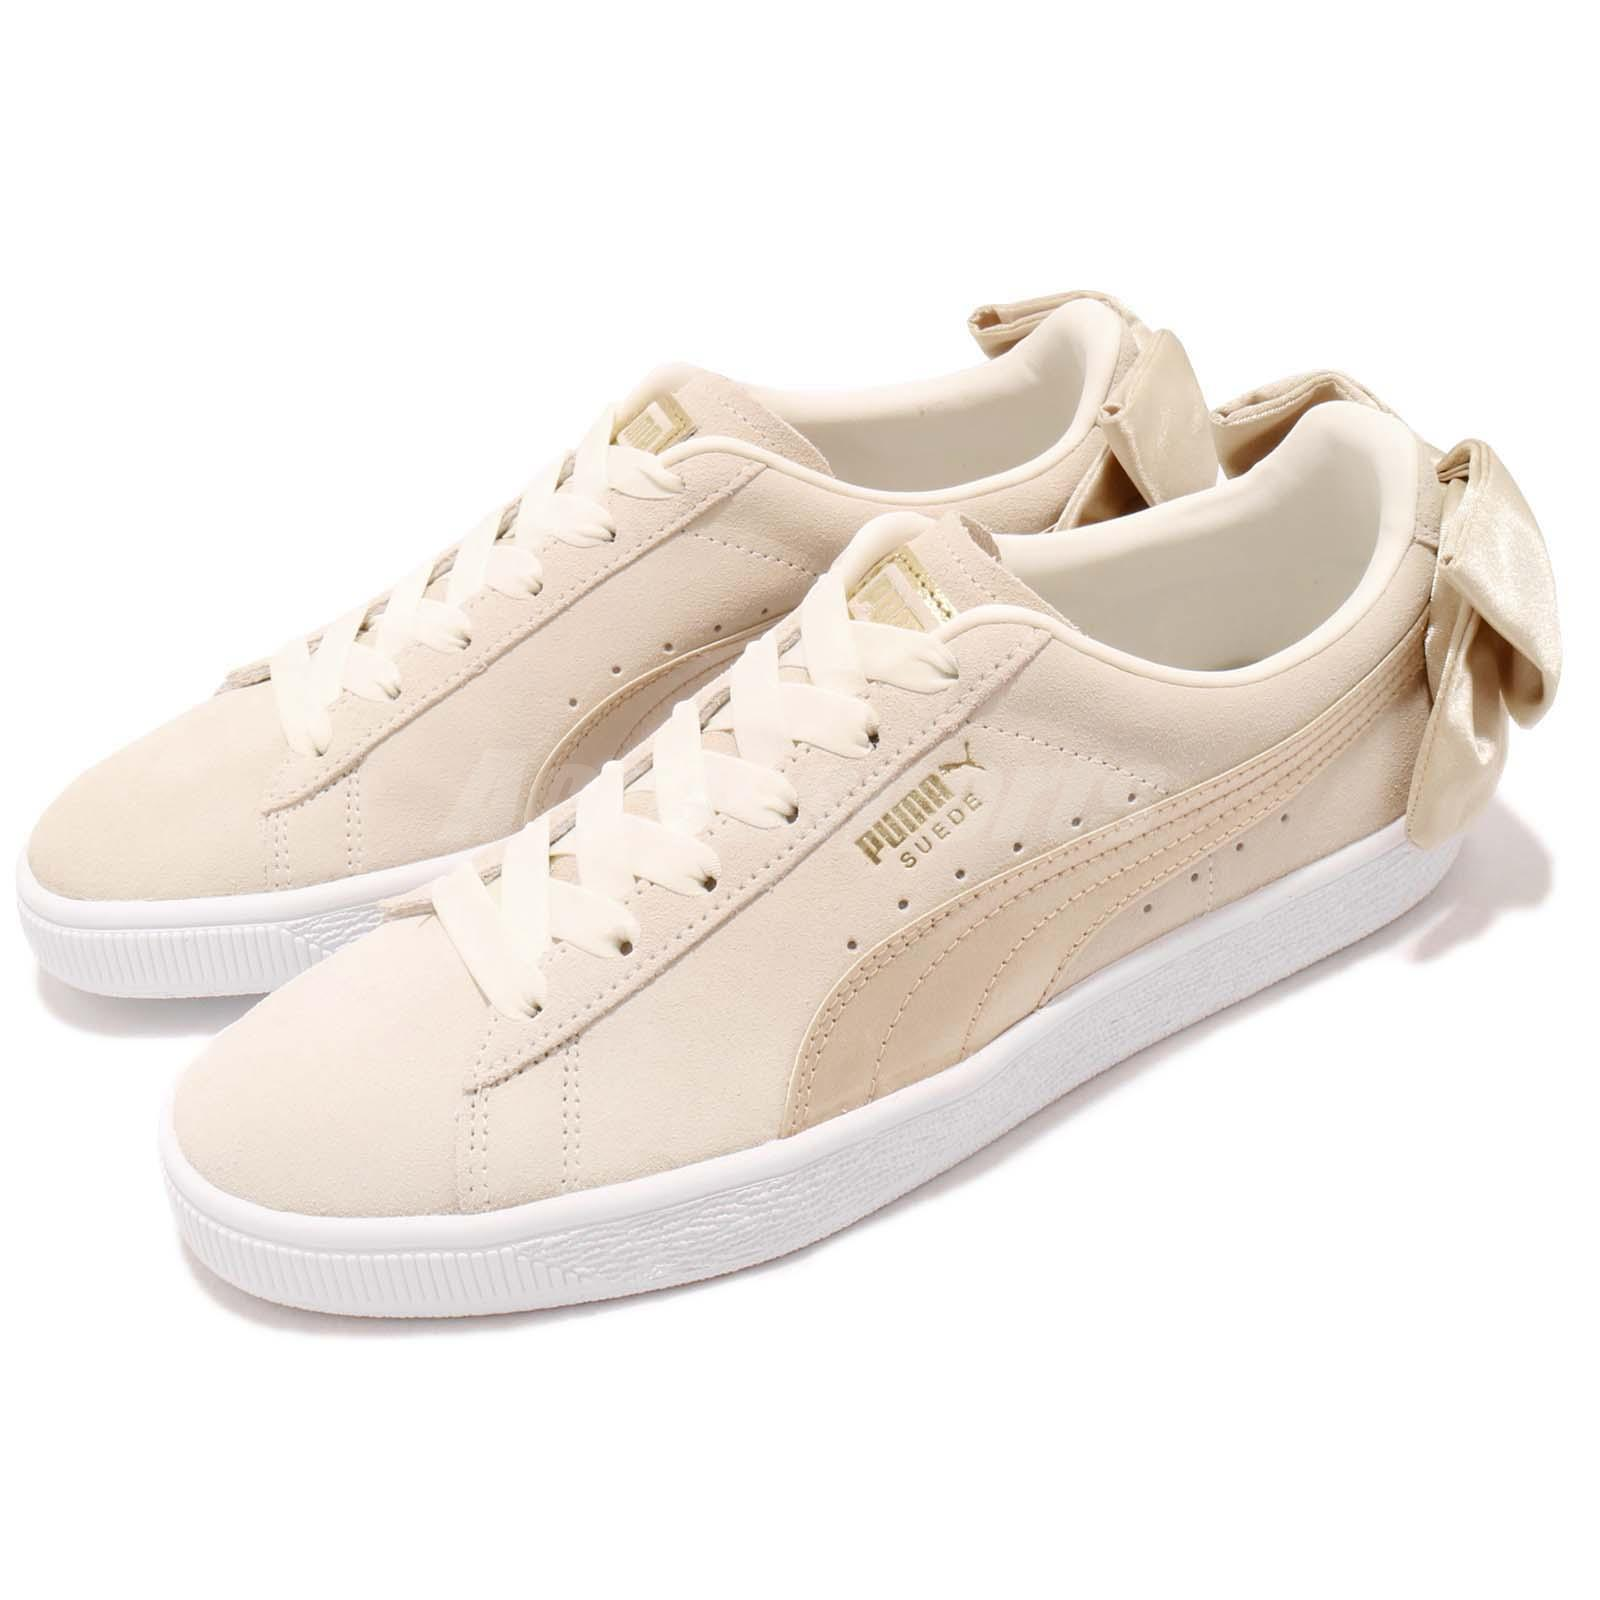 Details about Puma Suede Bow Varsity Wns Beige Gold Womens Casual Shoes  Sneakers 367732-03 535cab442